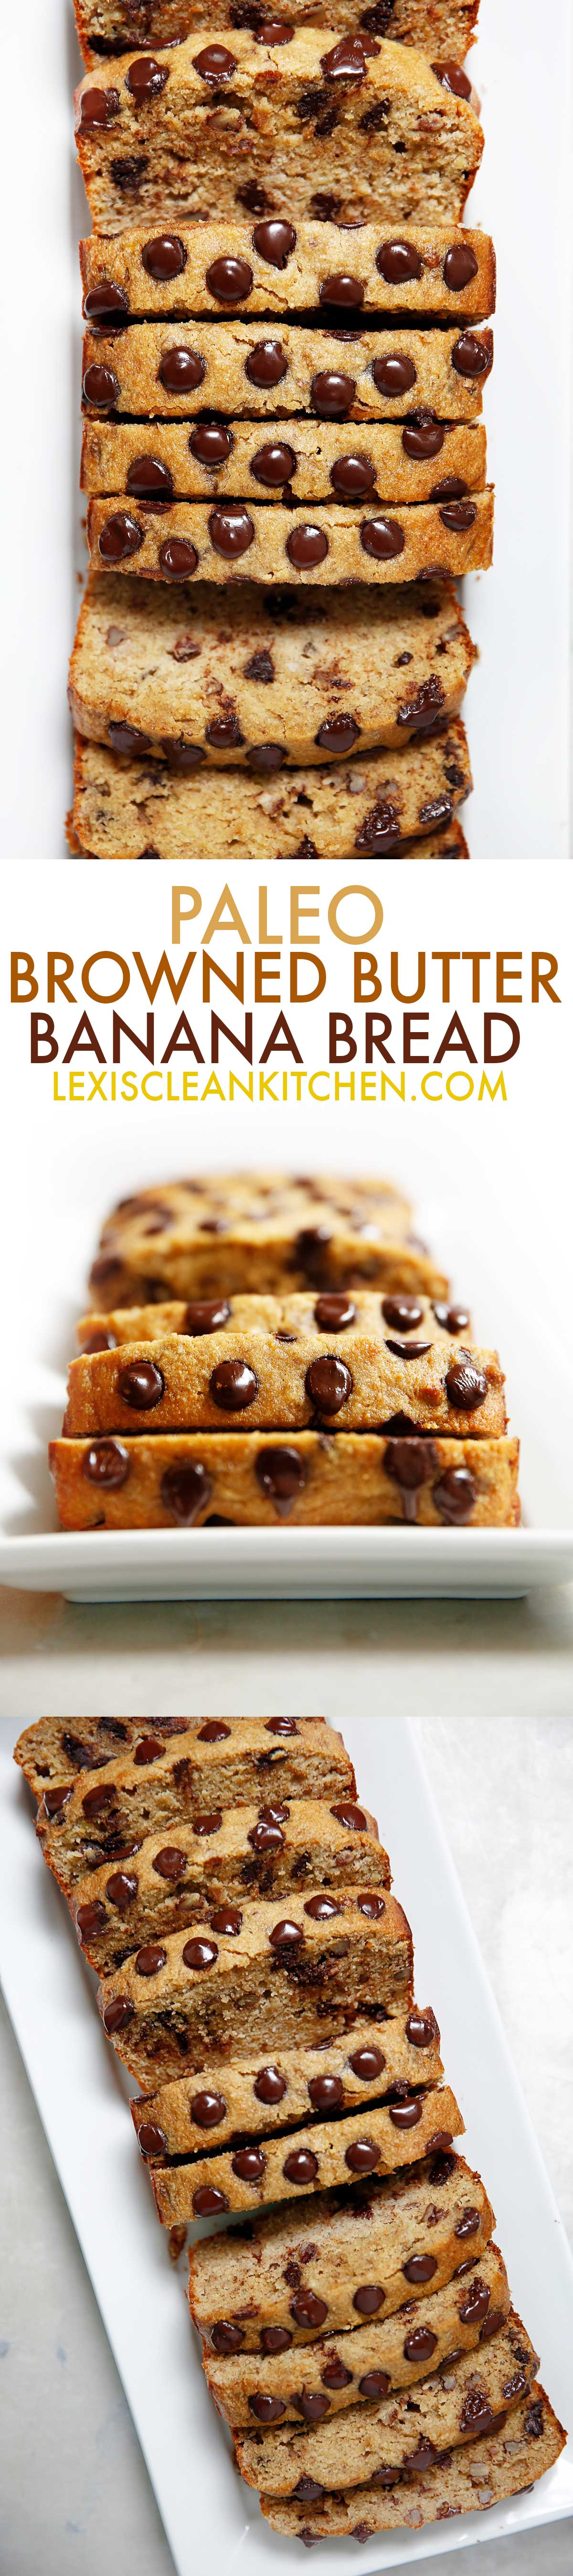 Paleo Brown Butter Banana Bread | Lexi's Clean Kitchen